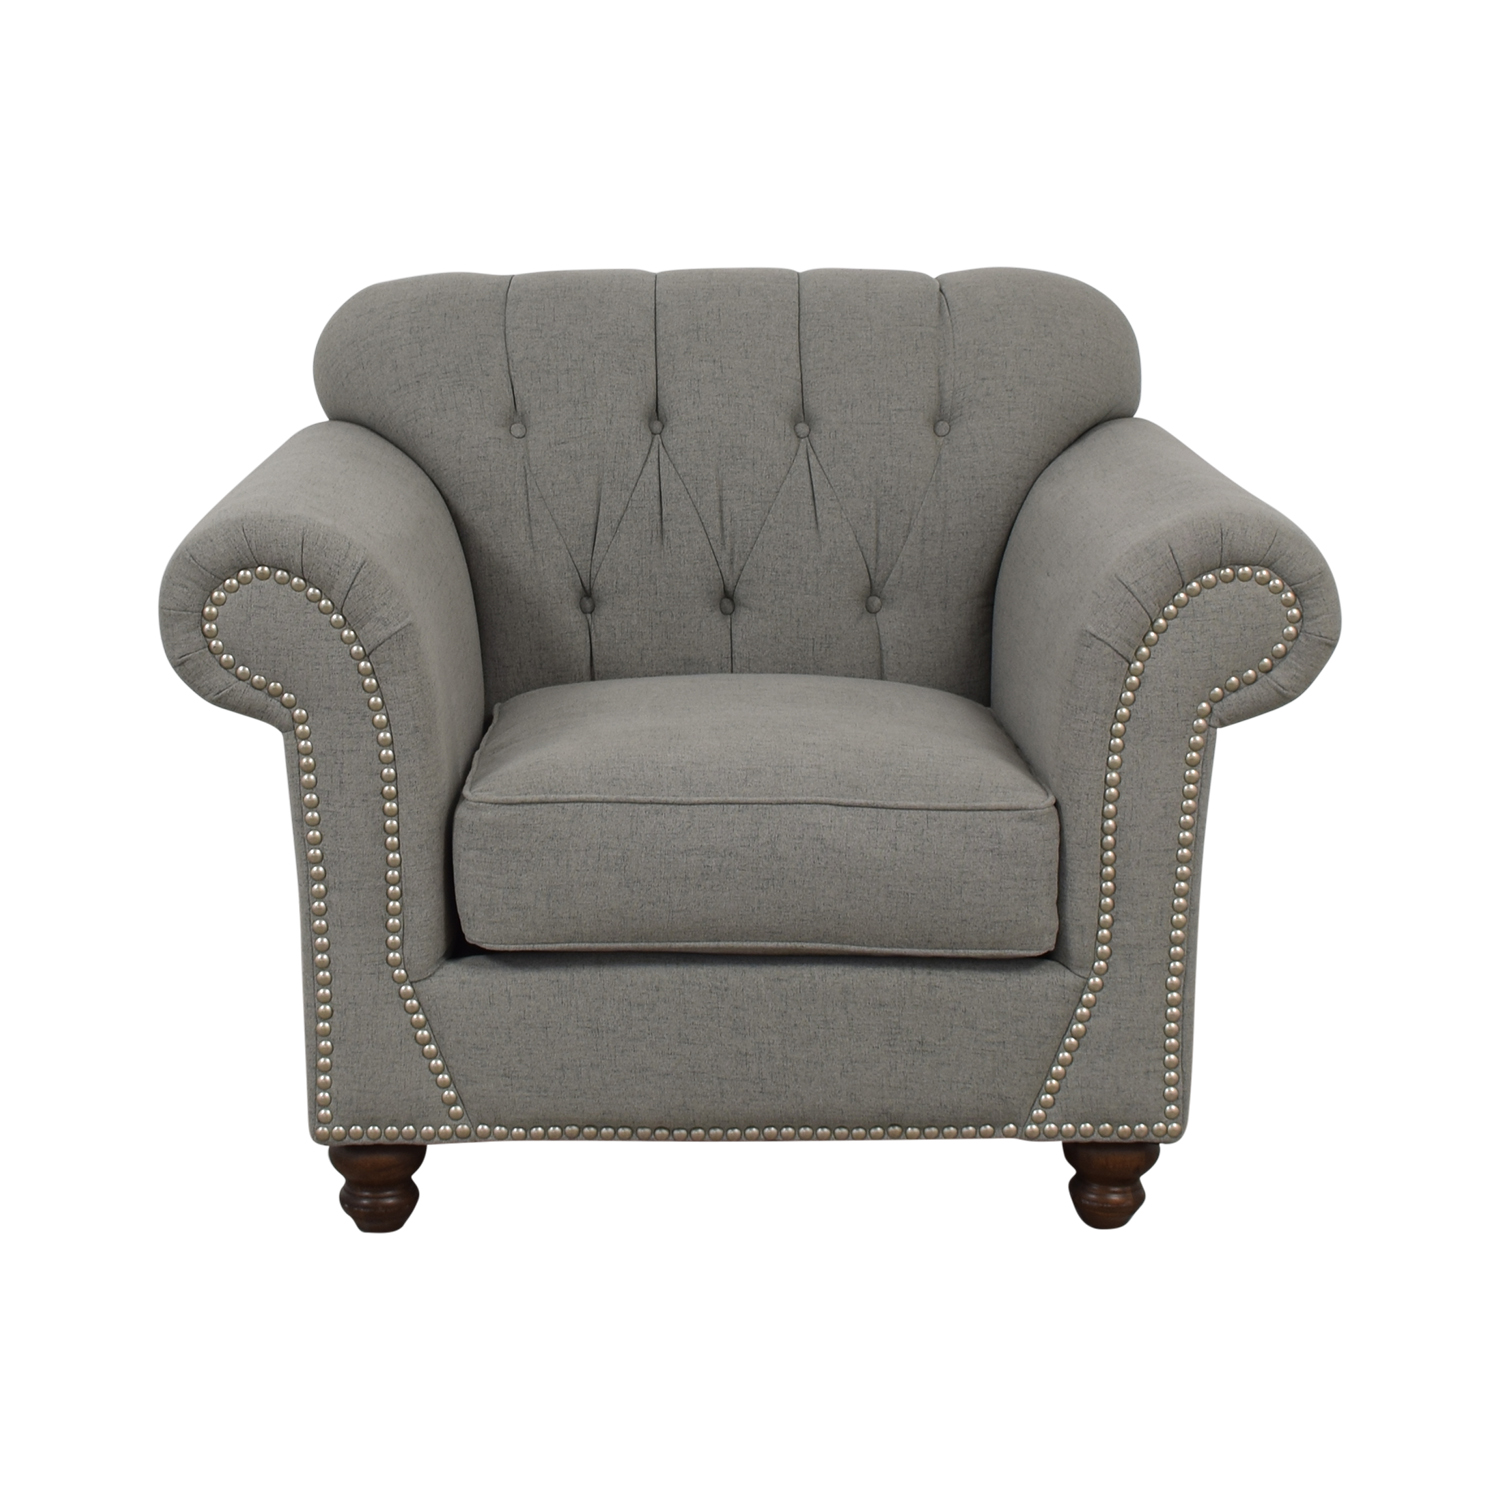 Klaussner Klaussner Distinctions Grey Tufted Nailhead Accent Chair used